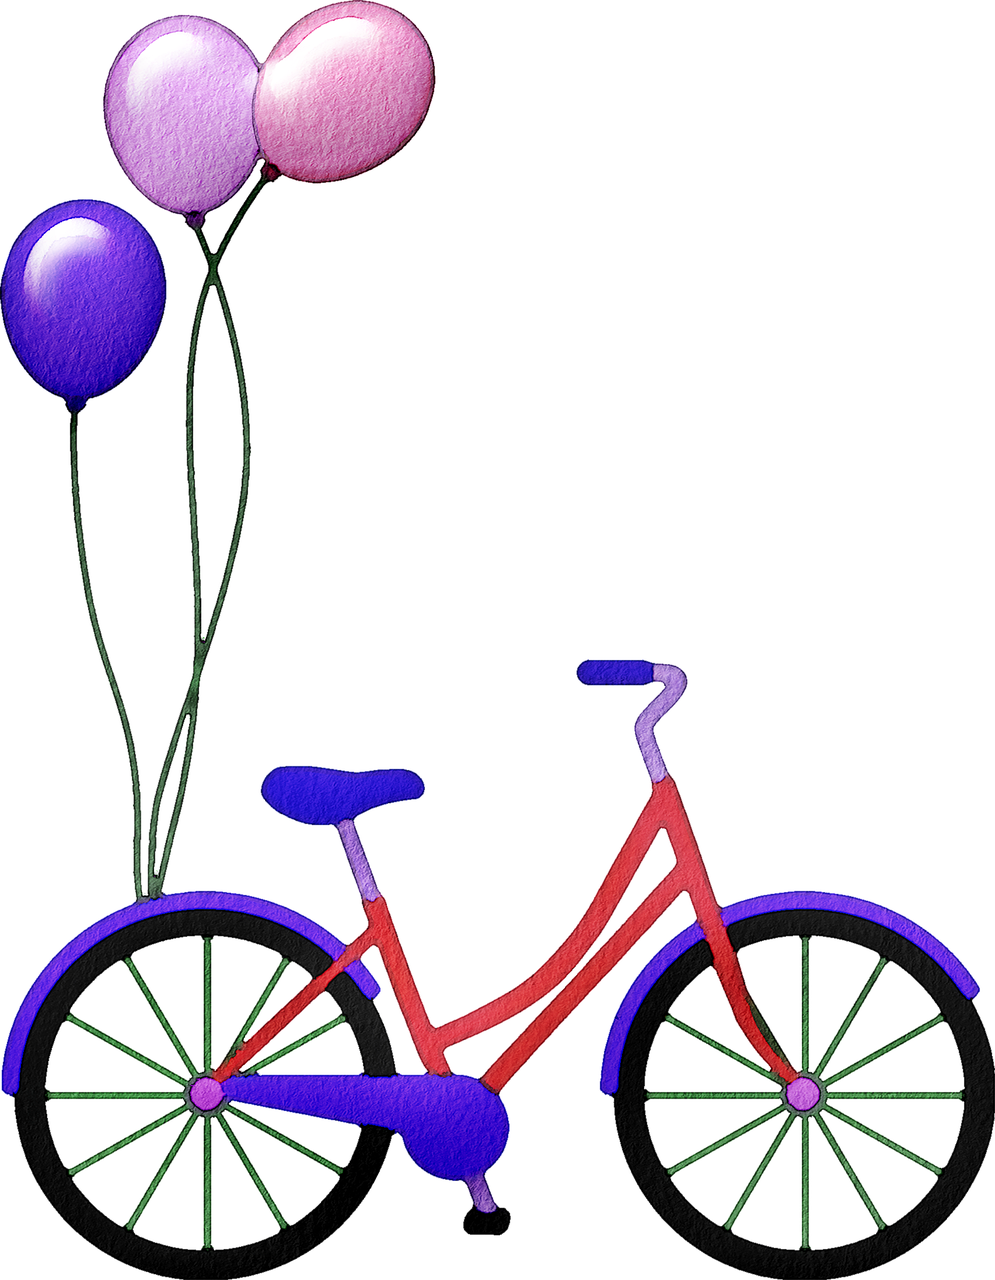 bicycle, bike, balloons